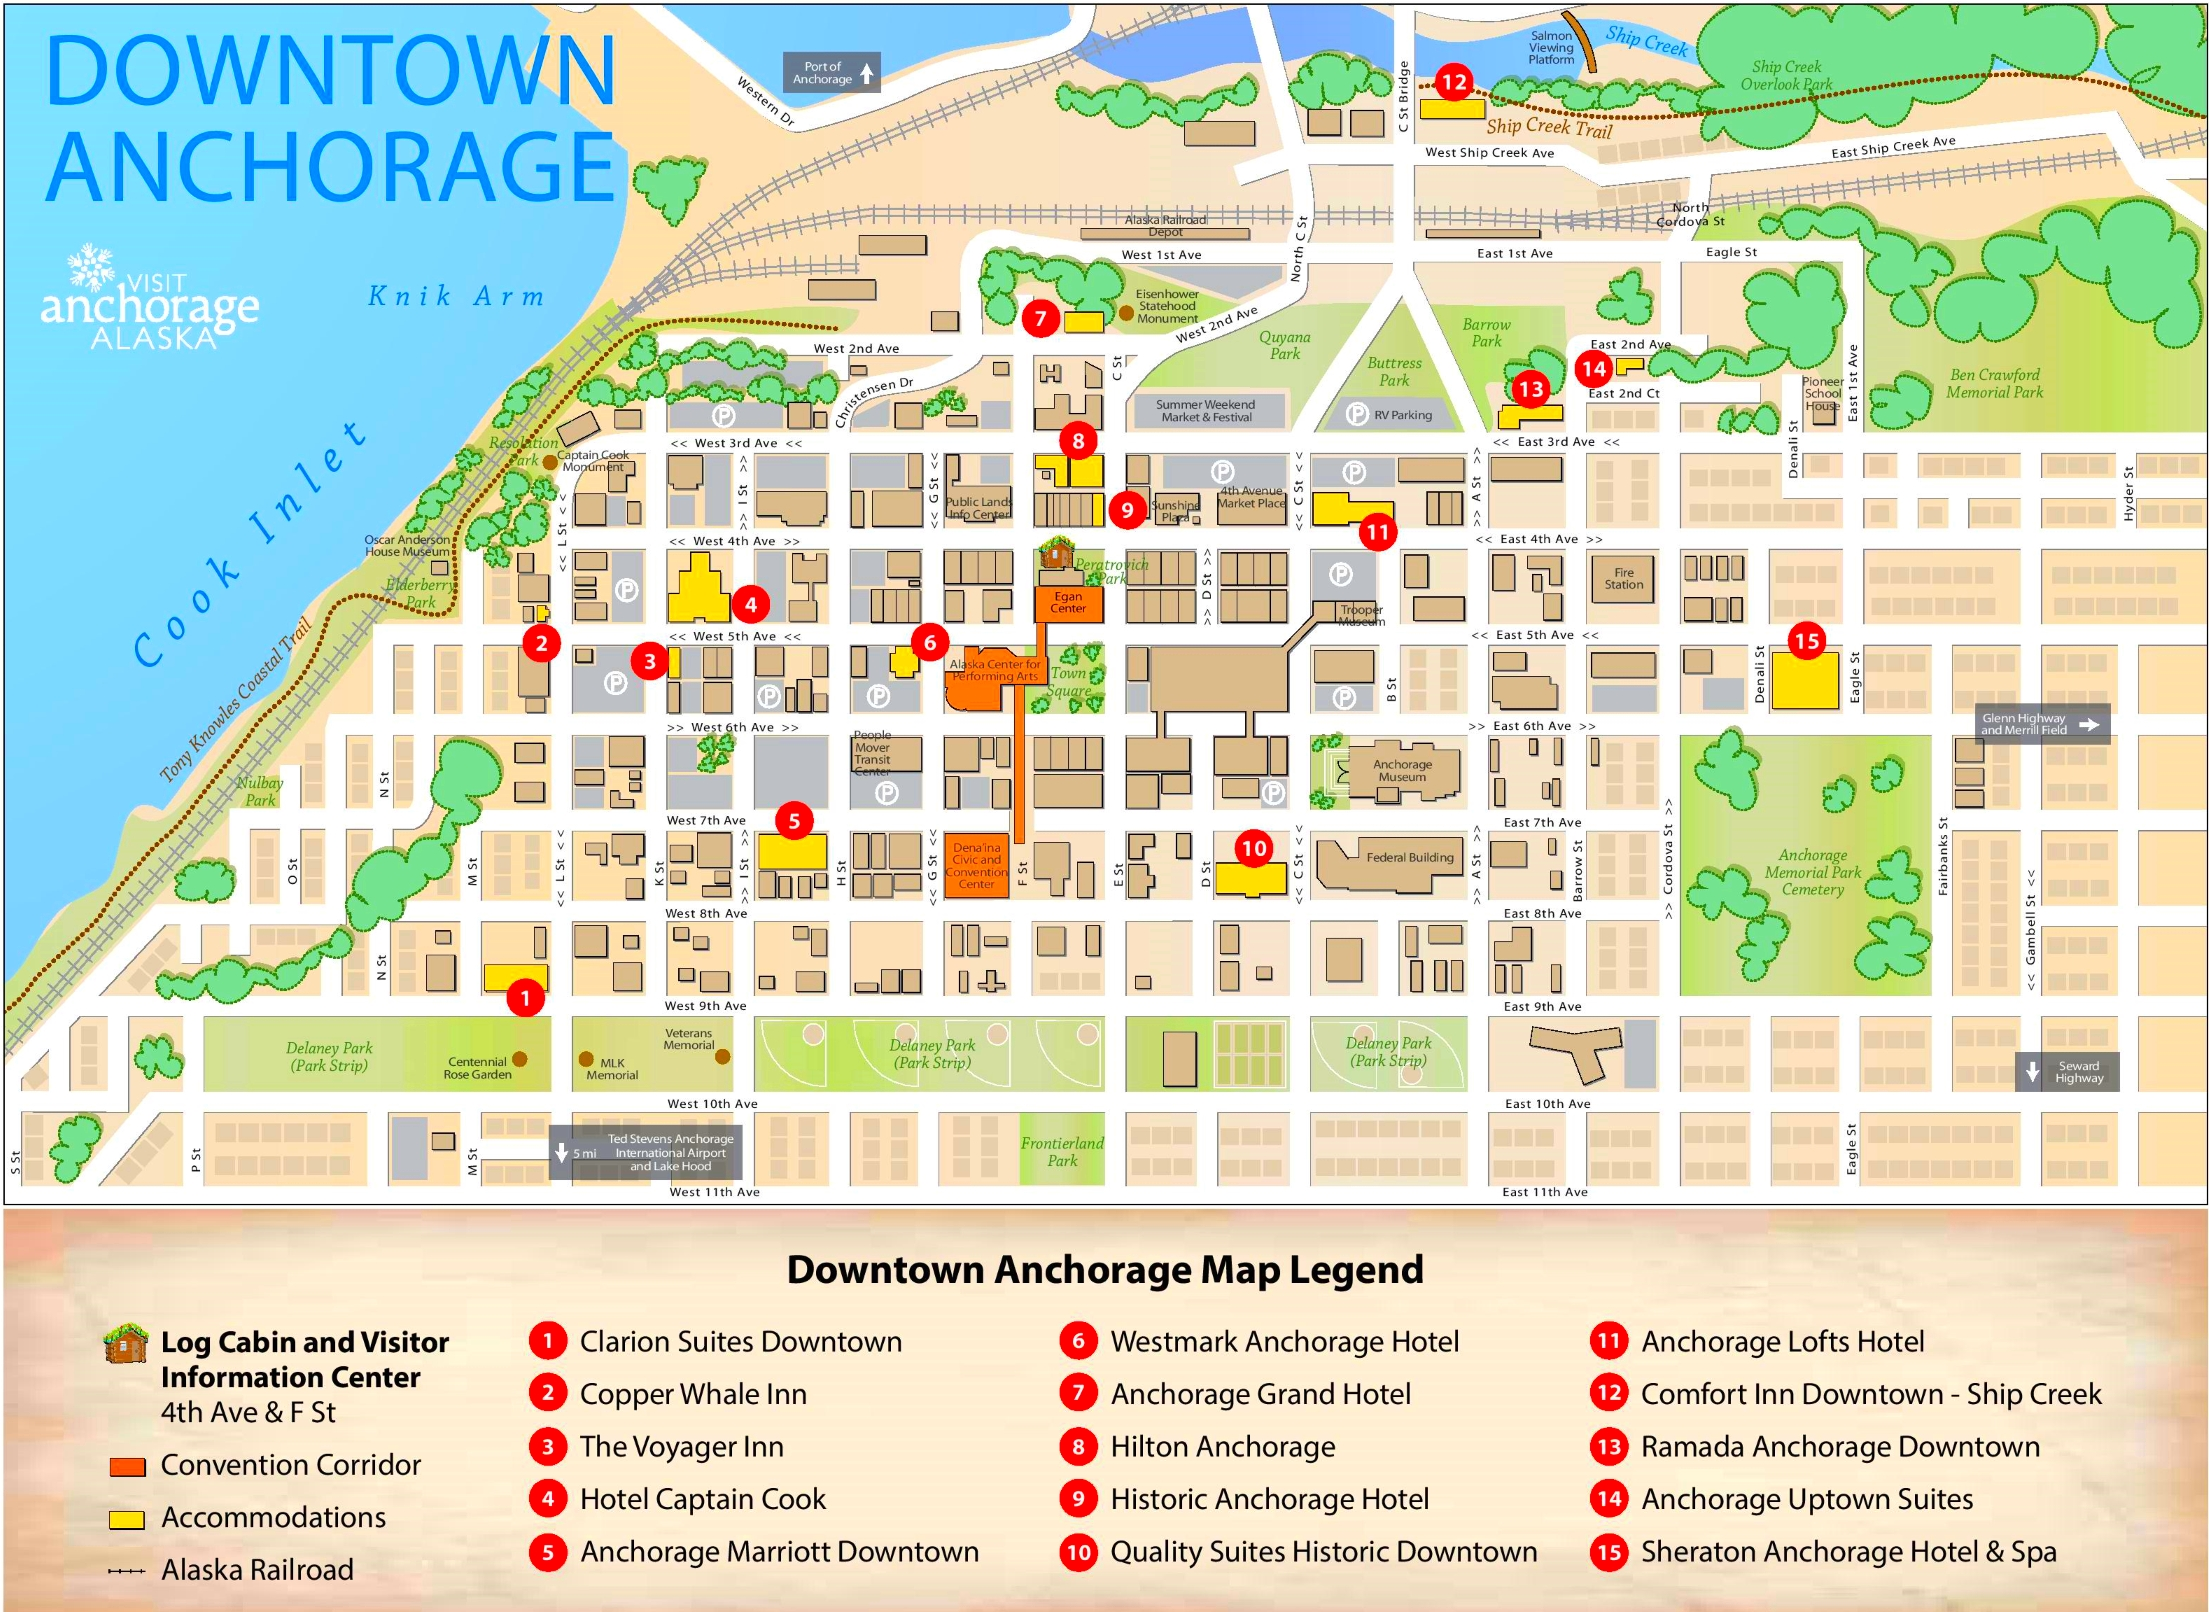 Anchorage Downtown Hotel Map